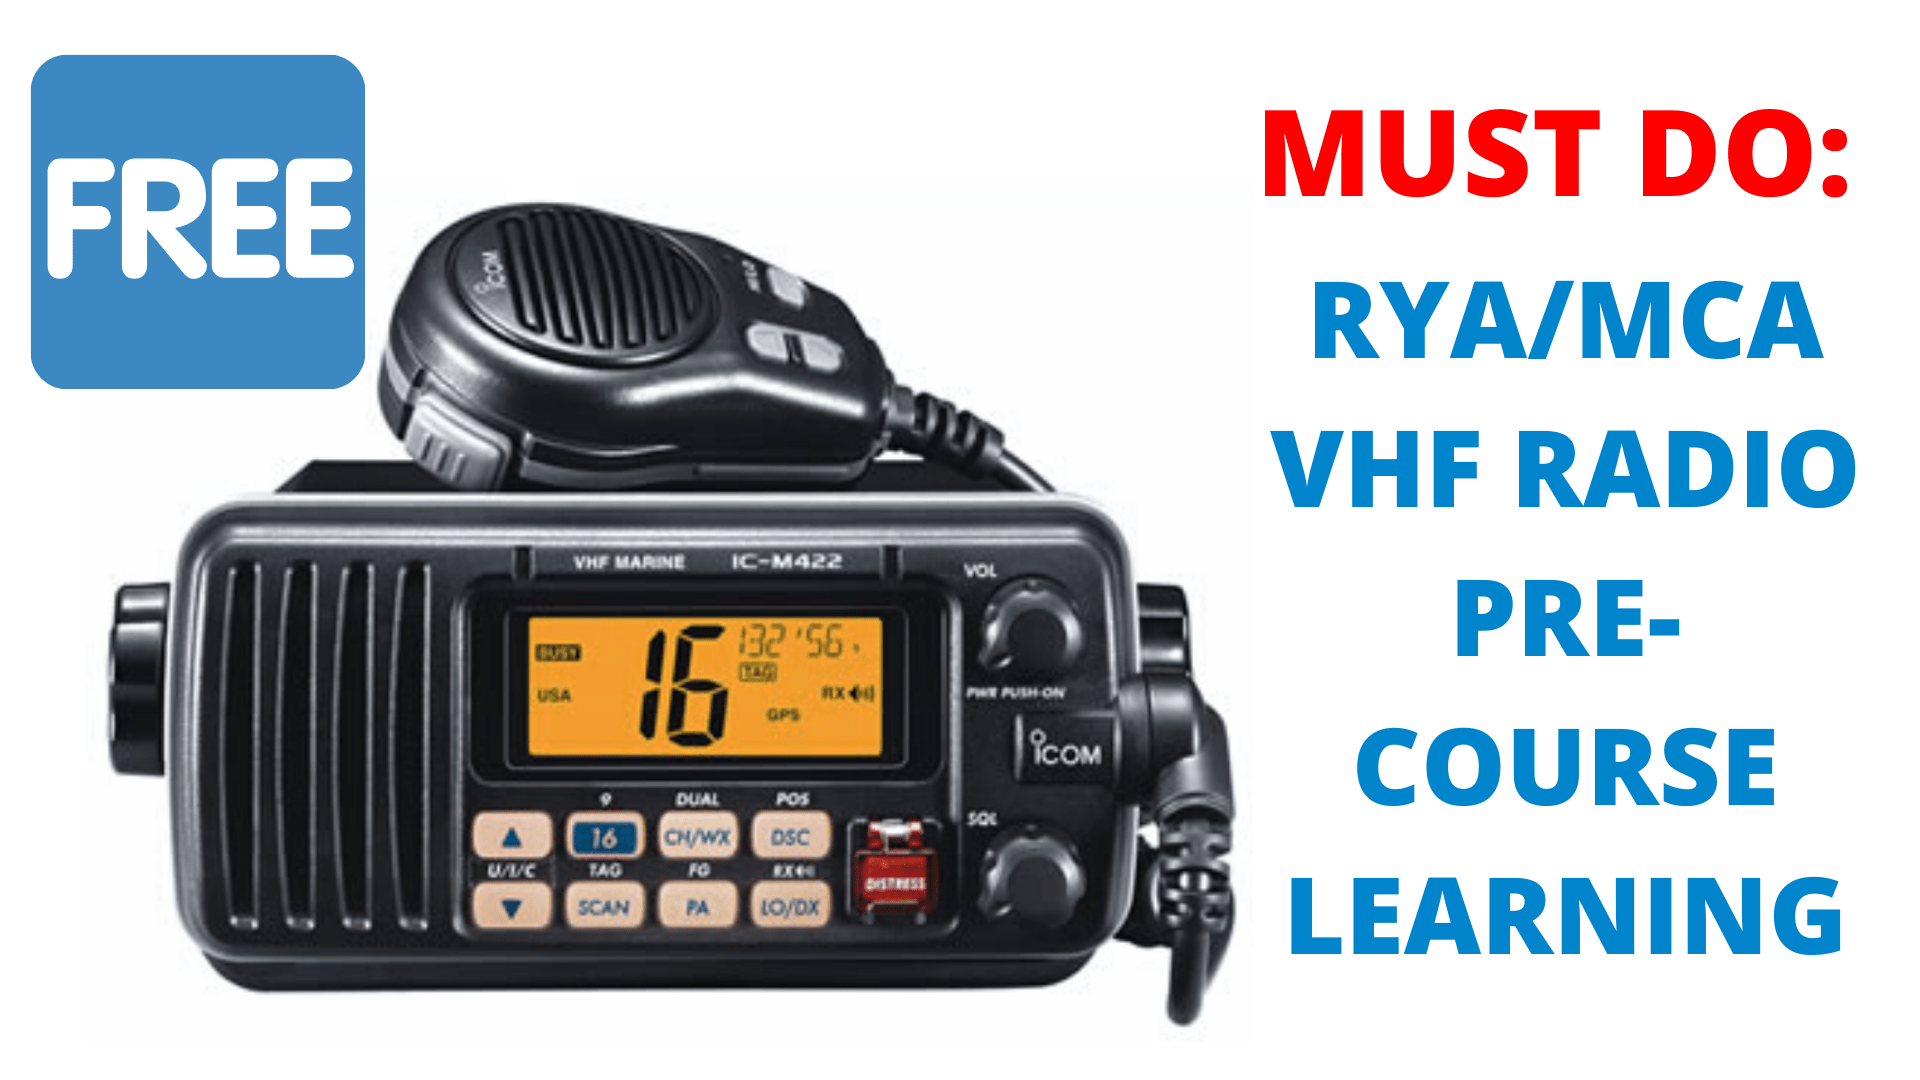 VHF RADIO PRE-COURSE LEARNING